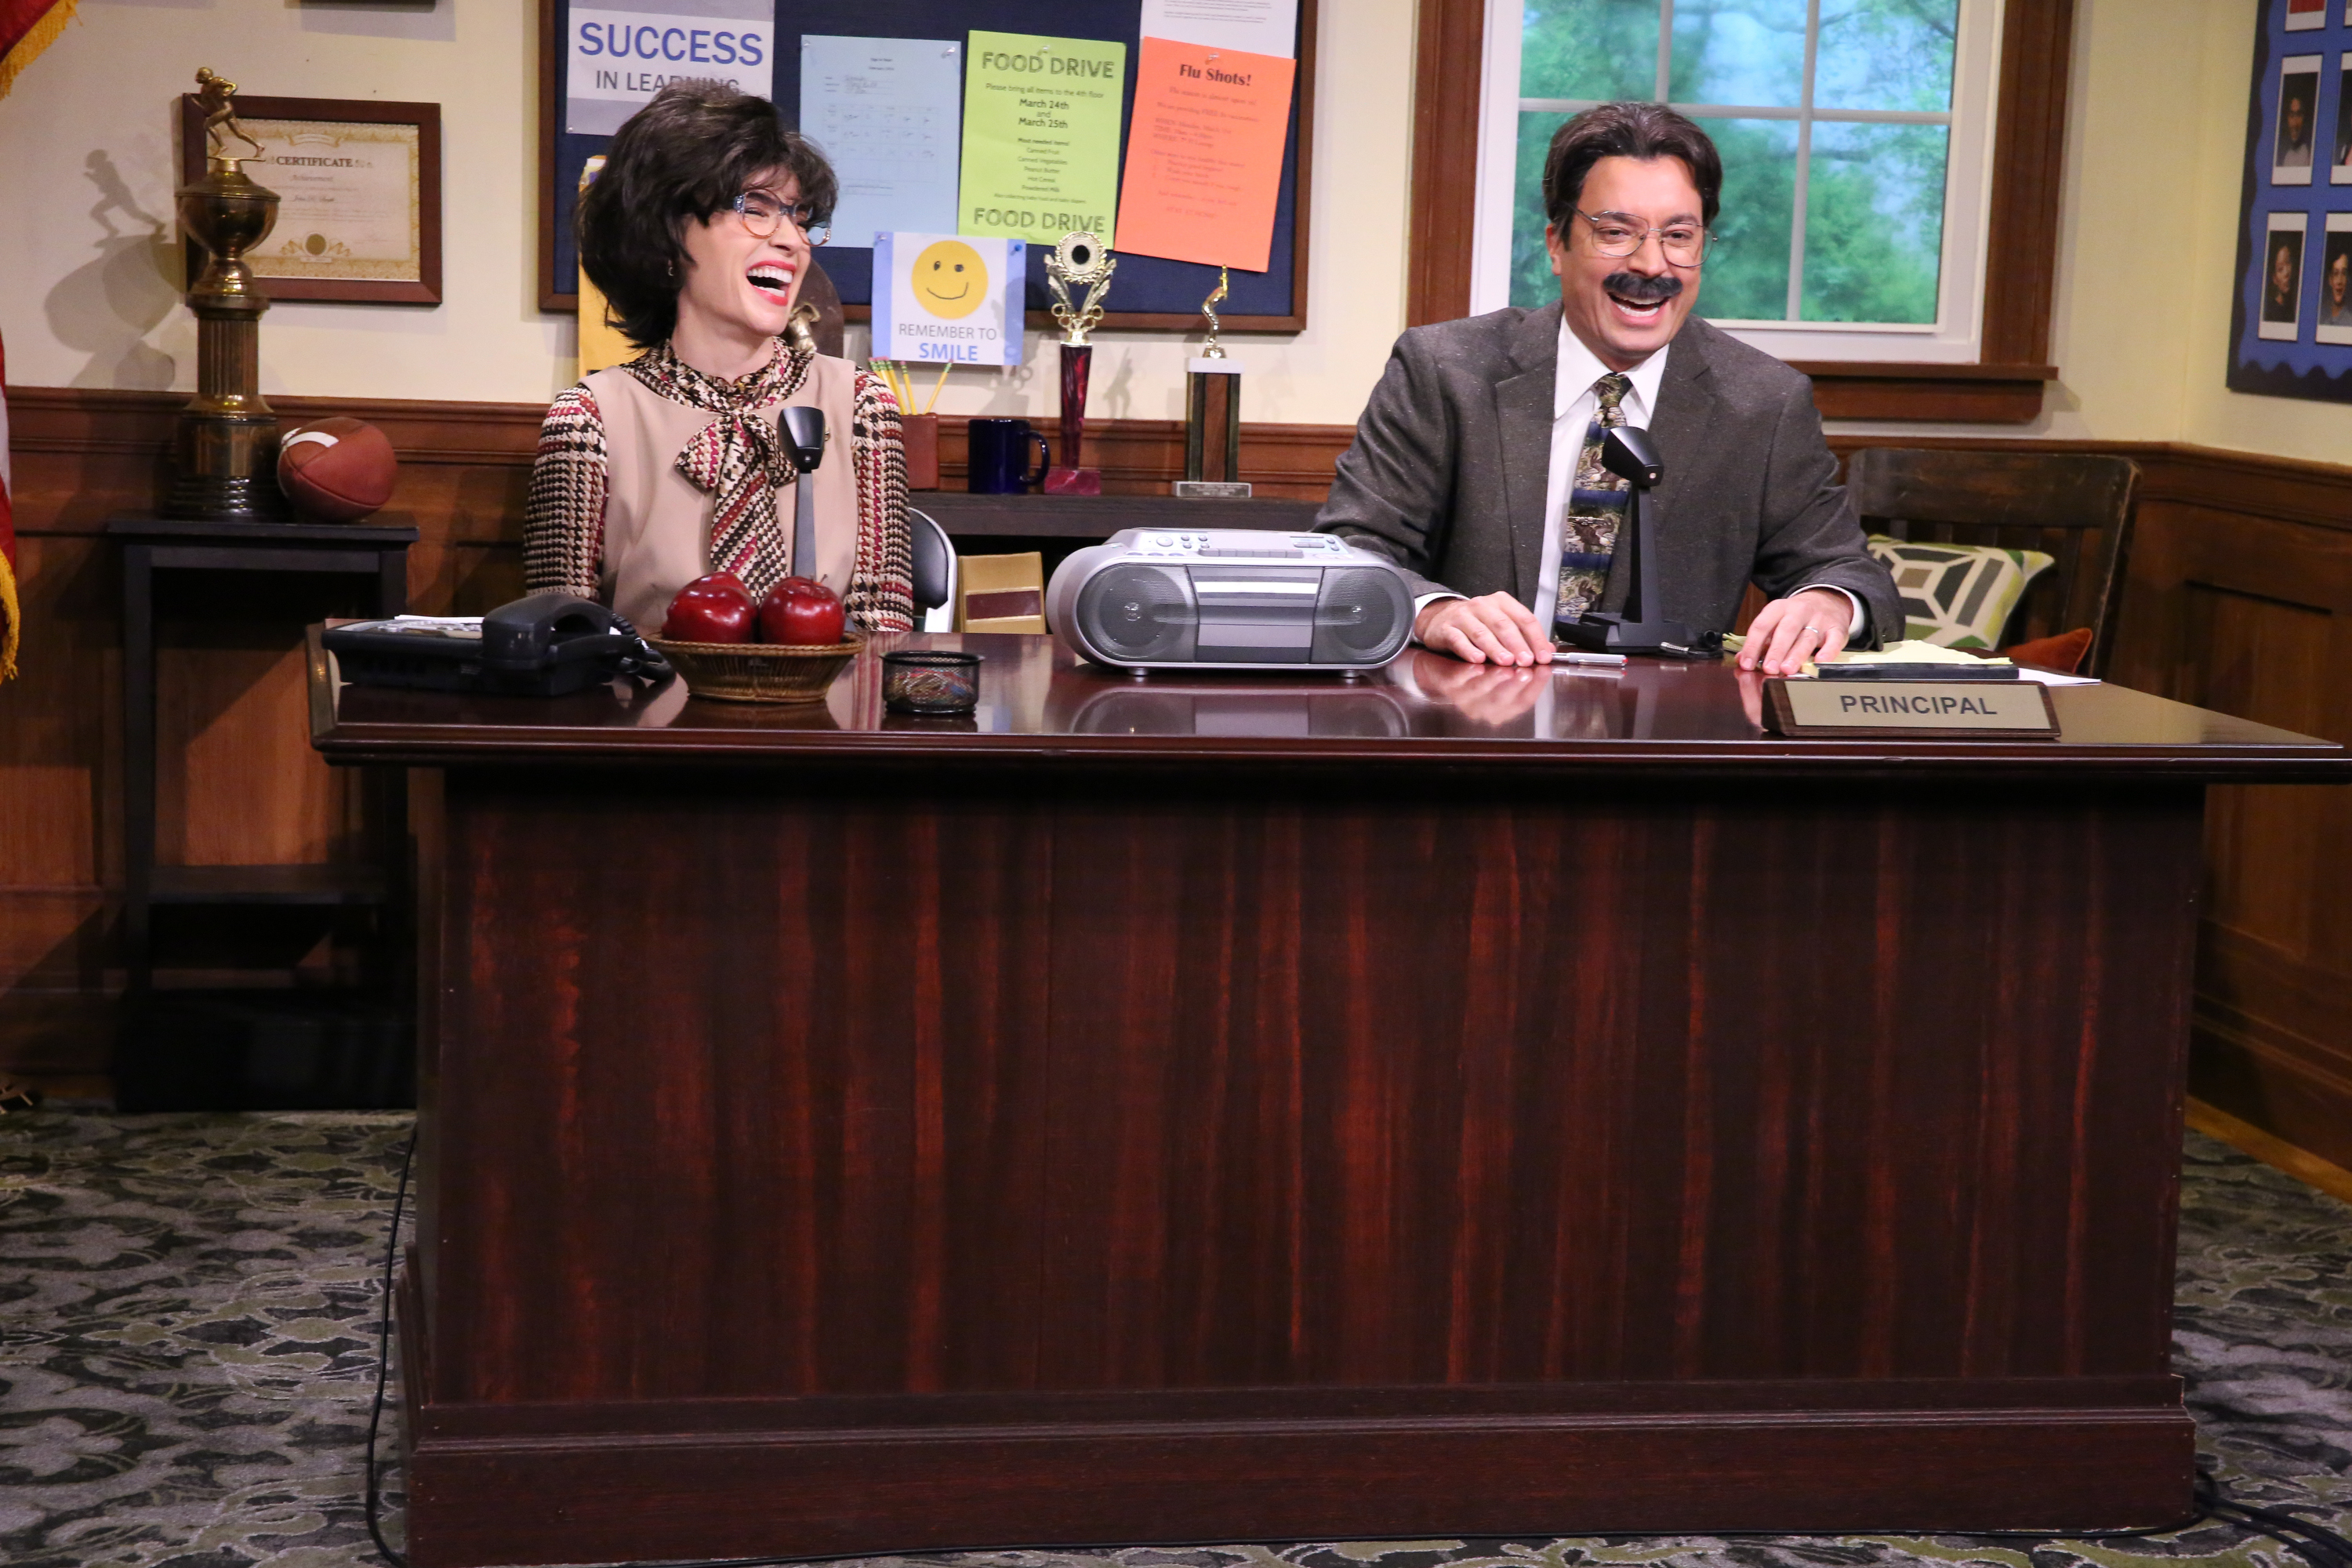 THE TONIGHT SHOW STARRING JIMMY FALLON -- Episode 0125 -- Pictured: (l-r) Actress Julianna Margulies and host Jimmy Fallon during the  Morning Announcements  skit on September 16, 2014 -- (Photo by: Douglas Gorenstein/NBC/NBCU Photo Bank via Getty Images)